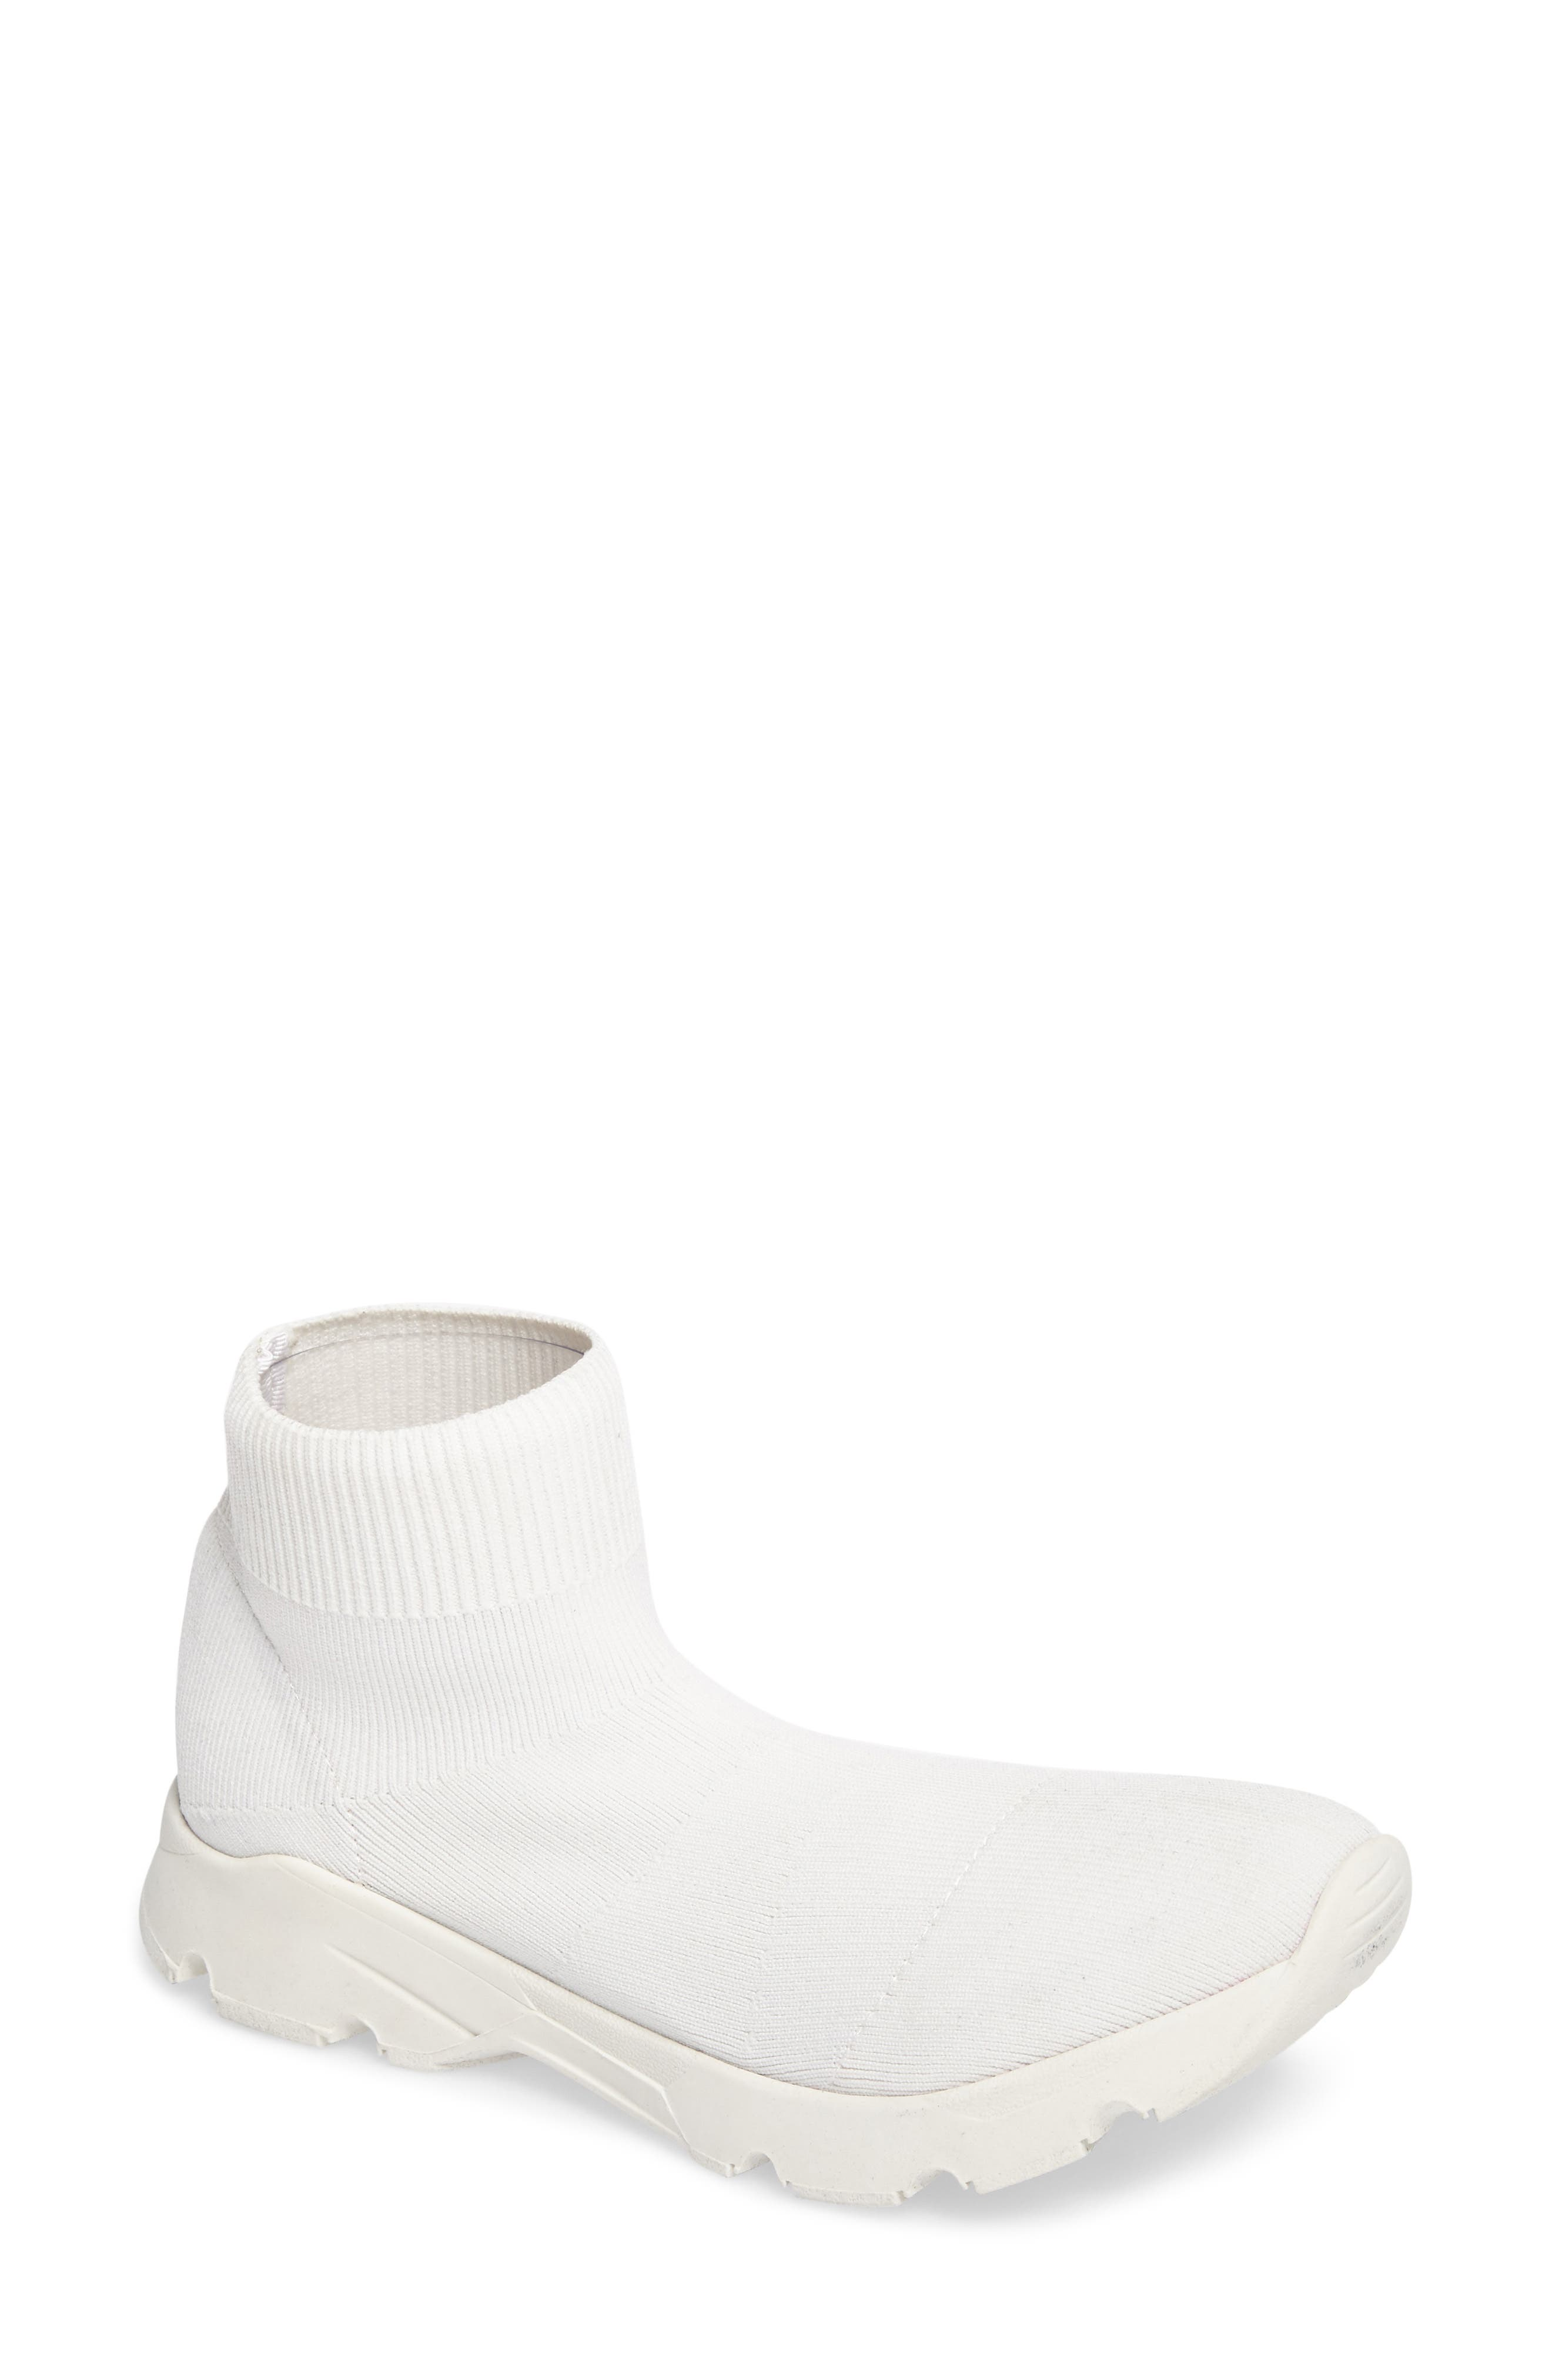 Main Image - Tony Bianco Winston Knit High Top Sneaker (Women)